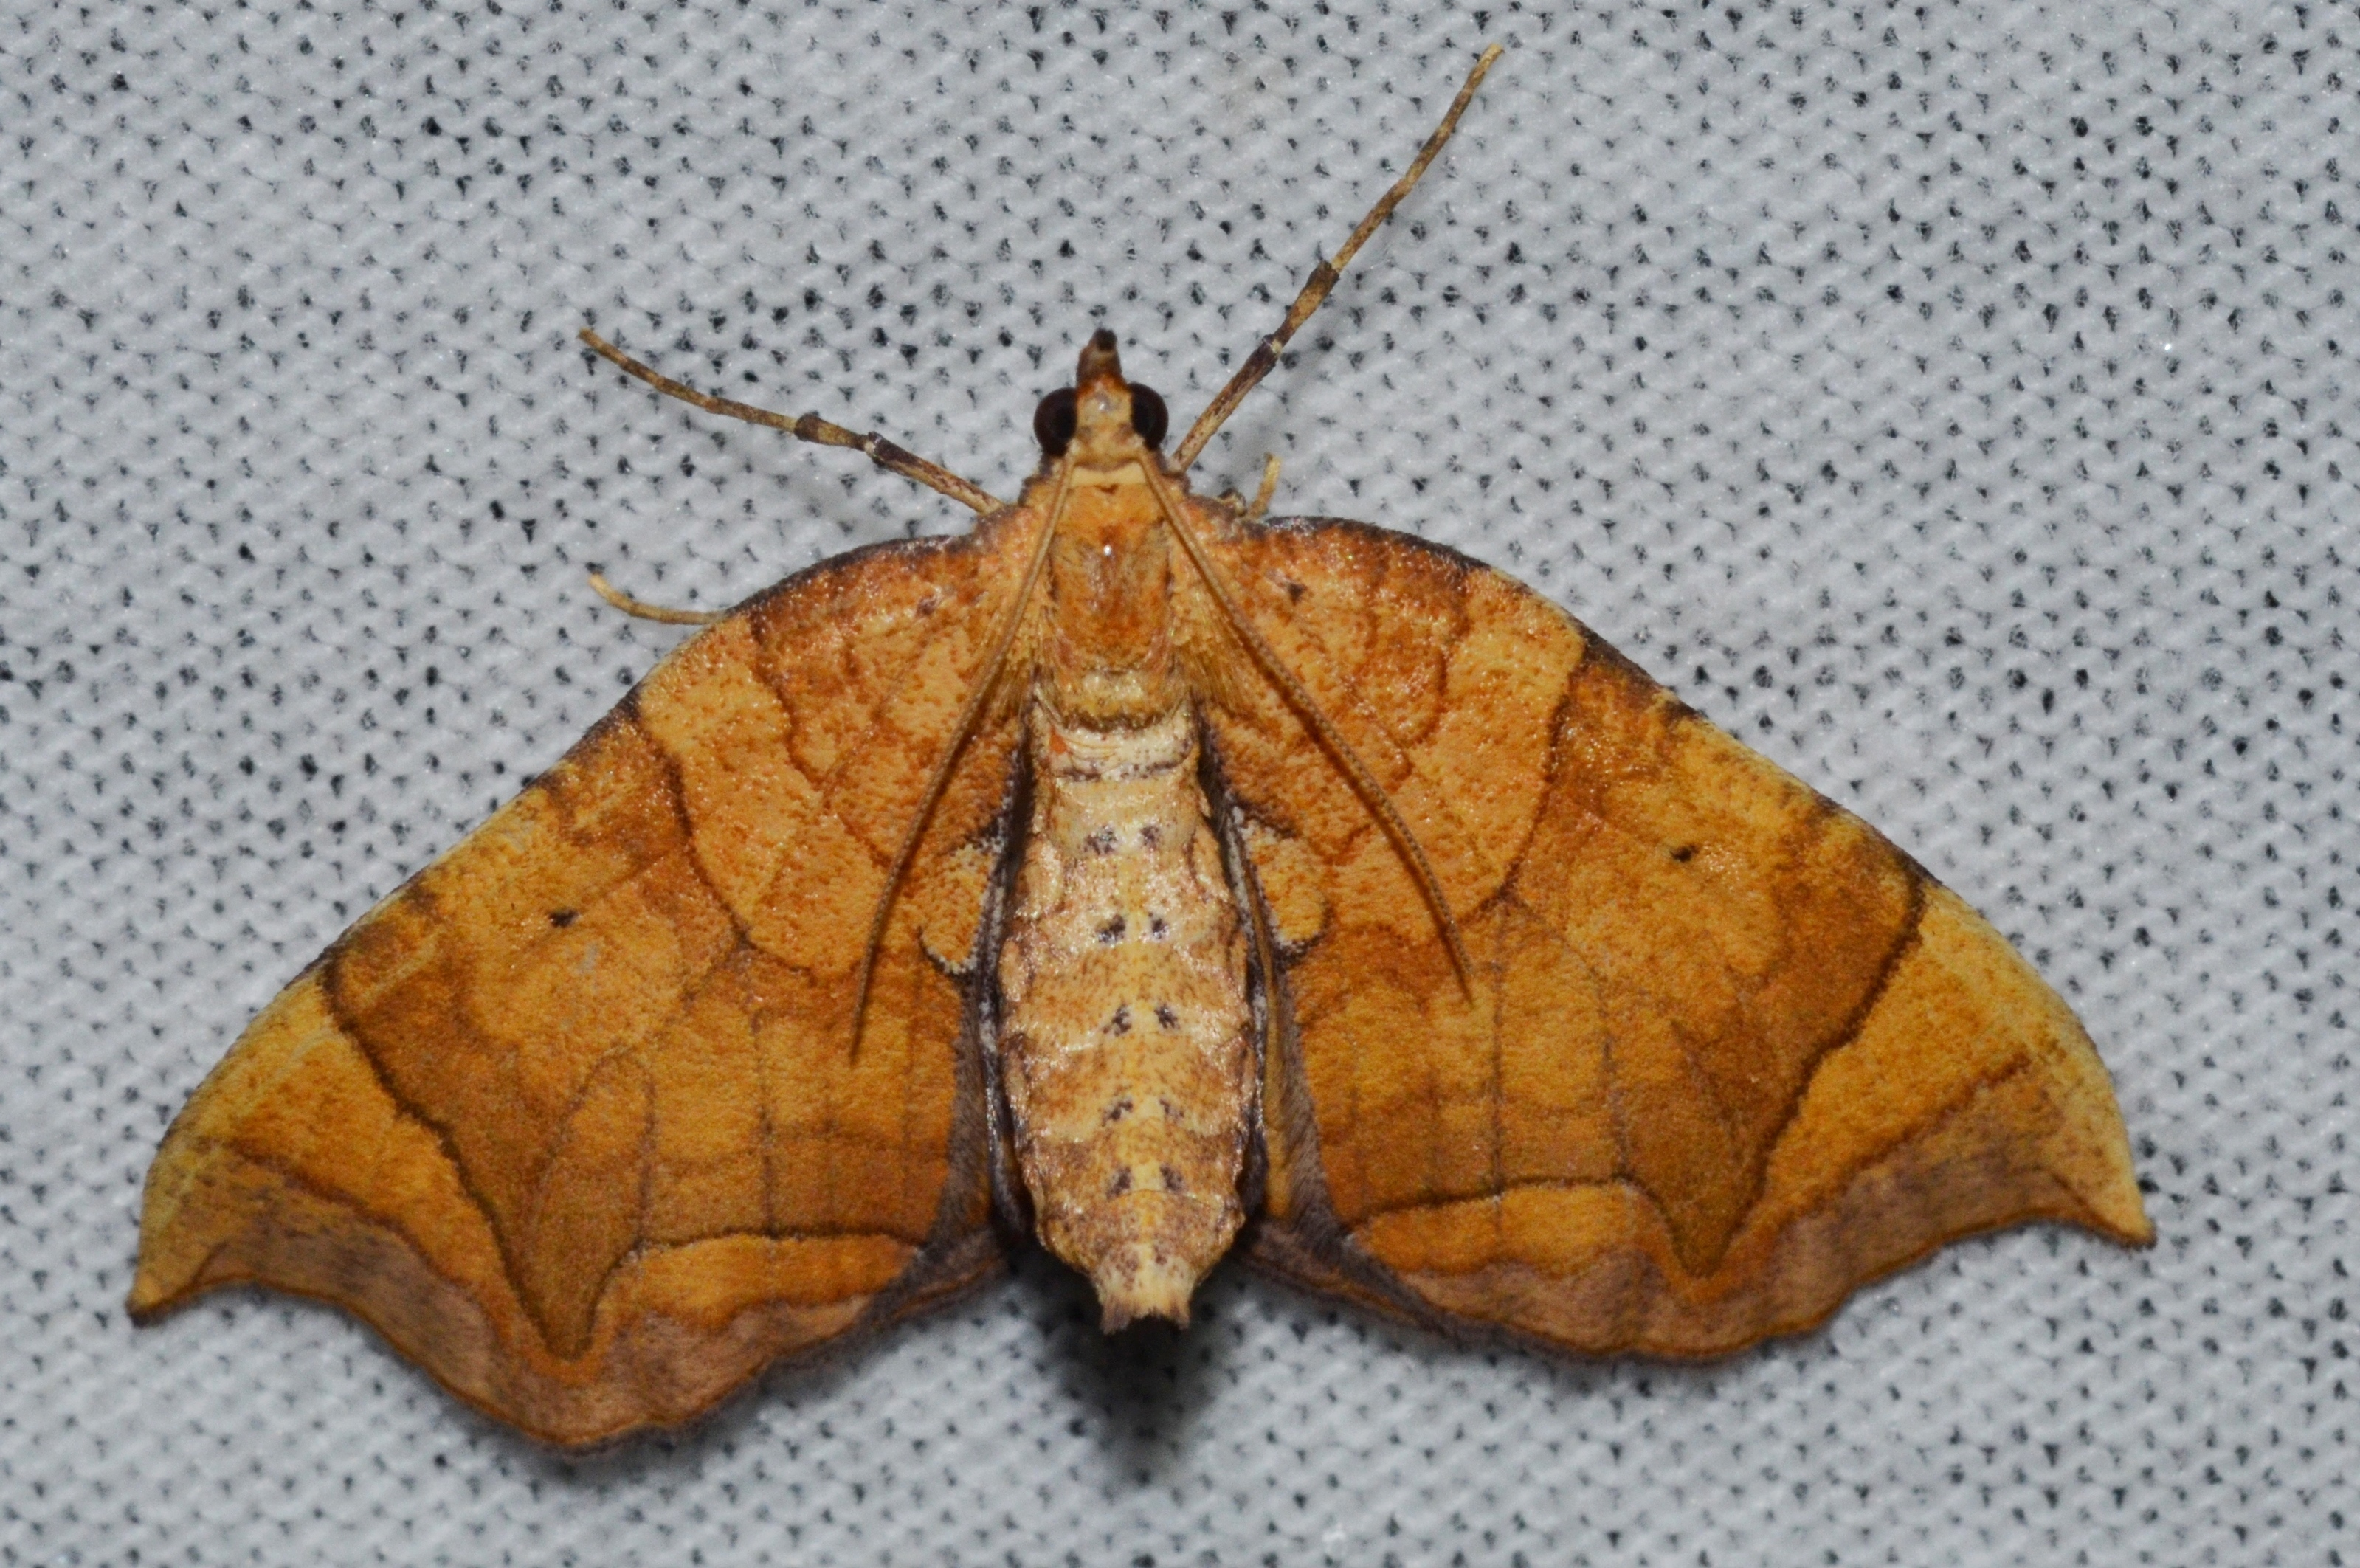 Image of Lesser Grapevine Looper Moth